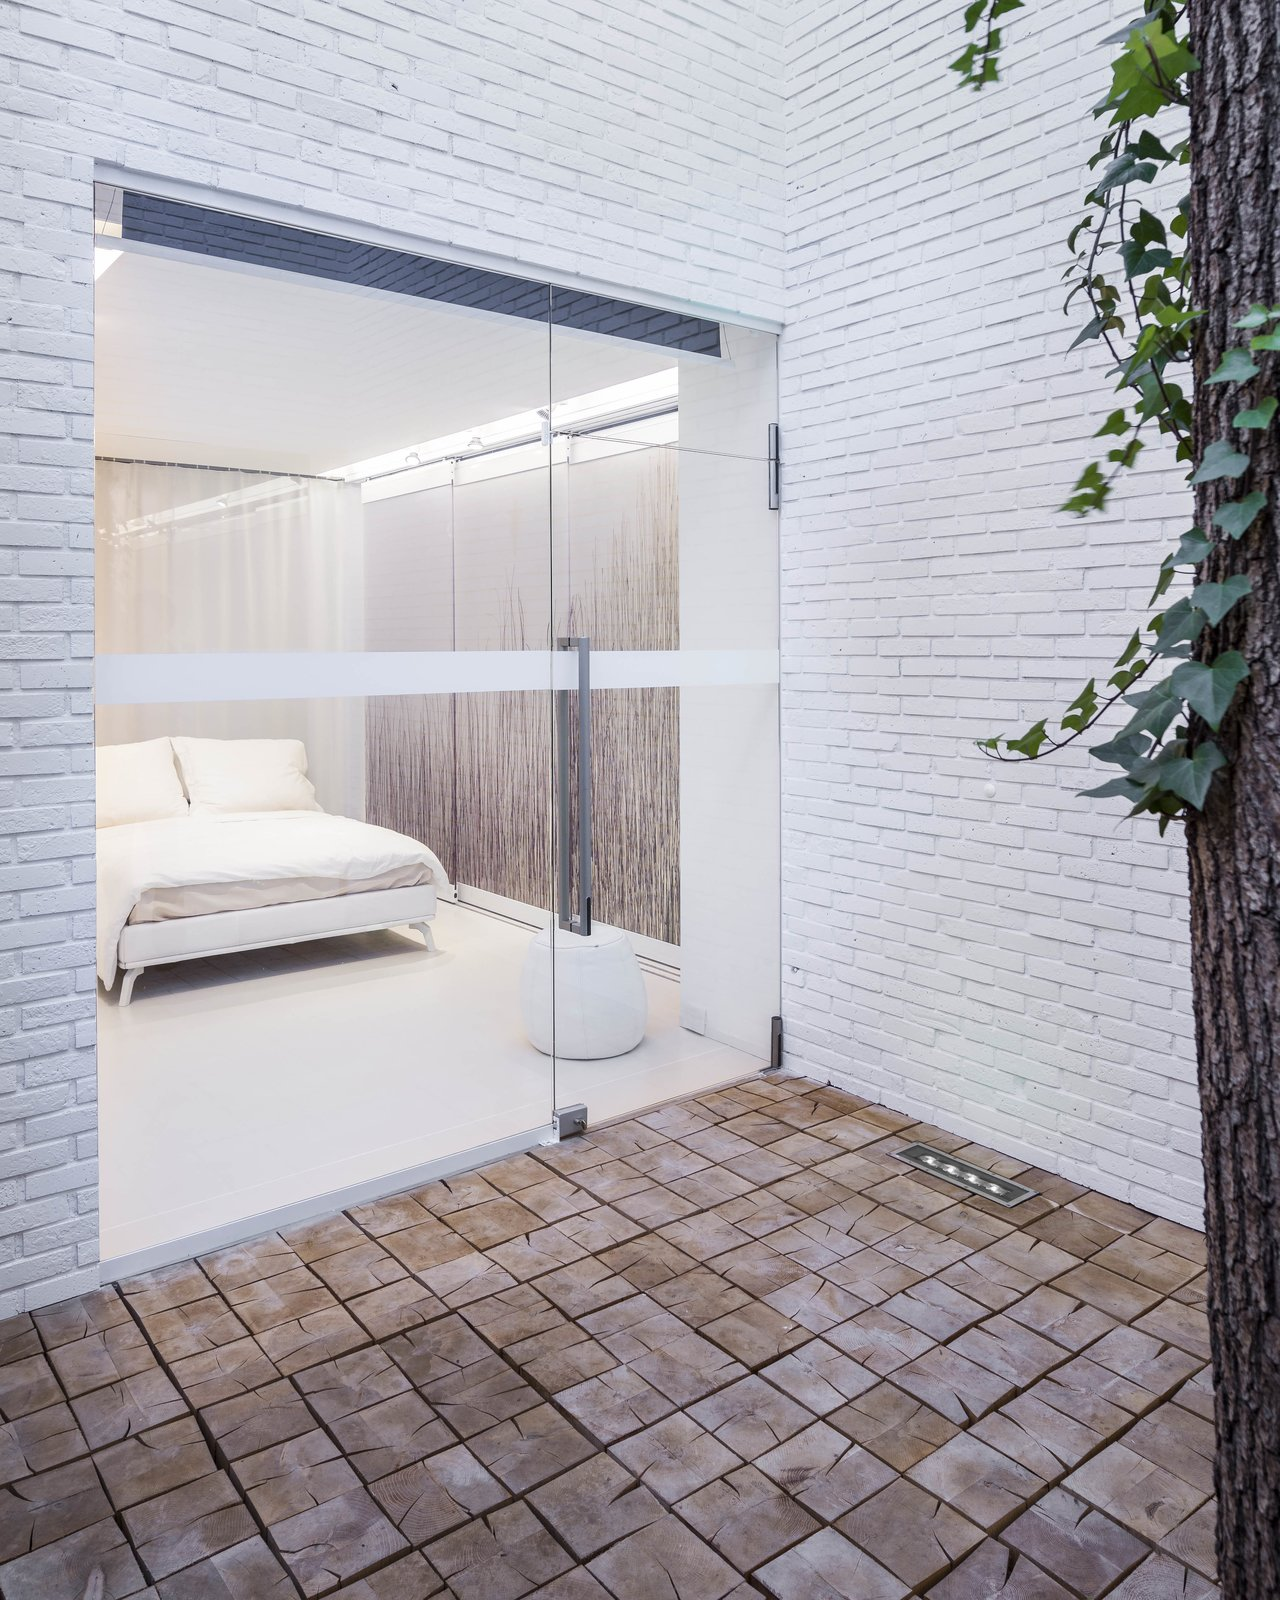 A view of one of the bedrooms from a courtyard. Bedrooms by Dwell